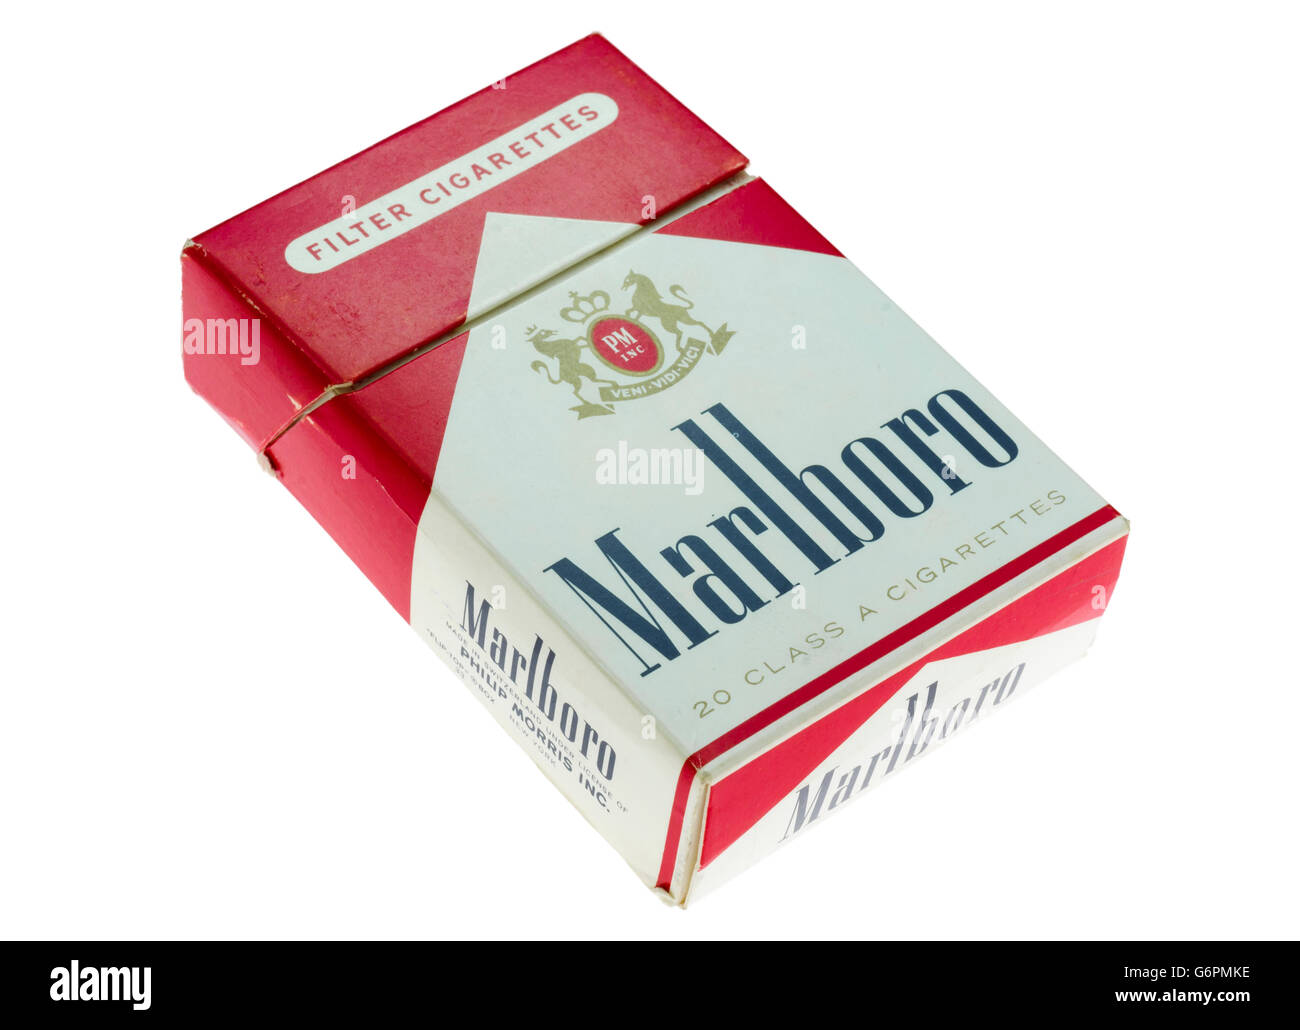 Where can i buy cigarettes Marlboro in UK store